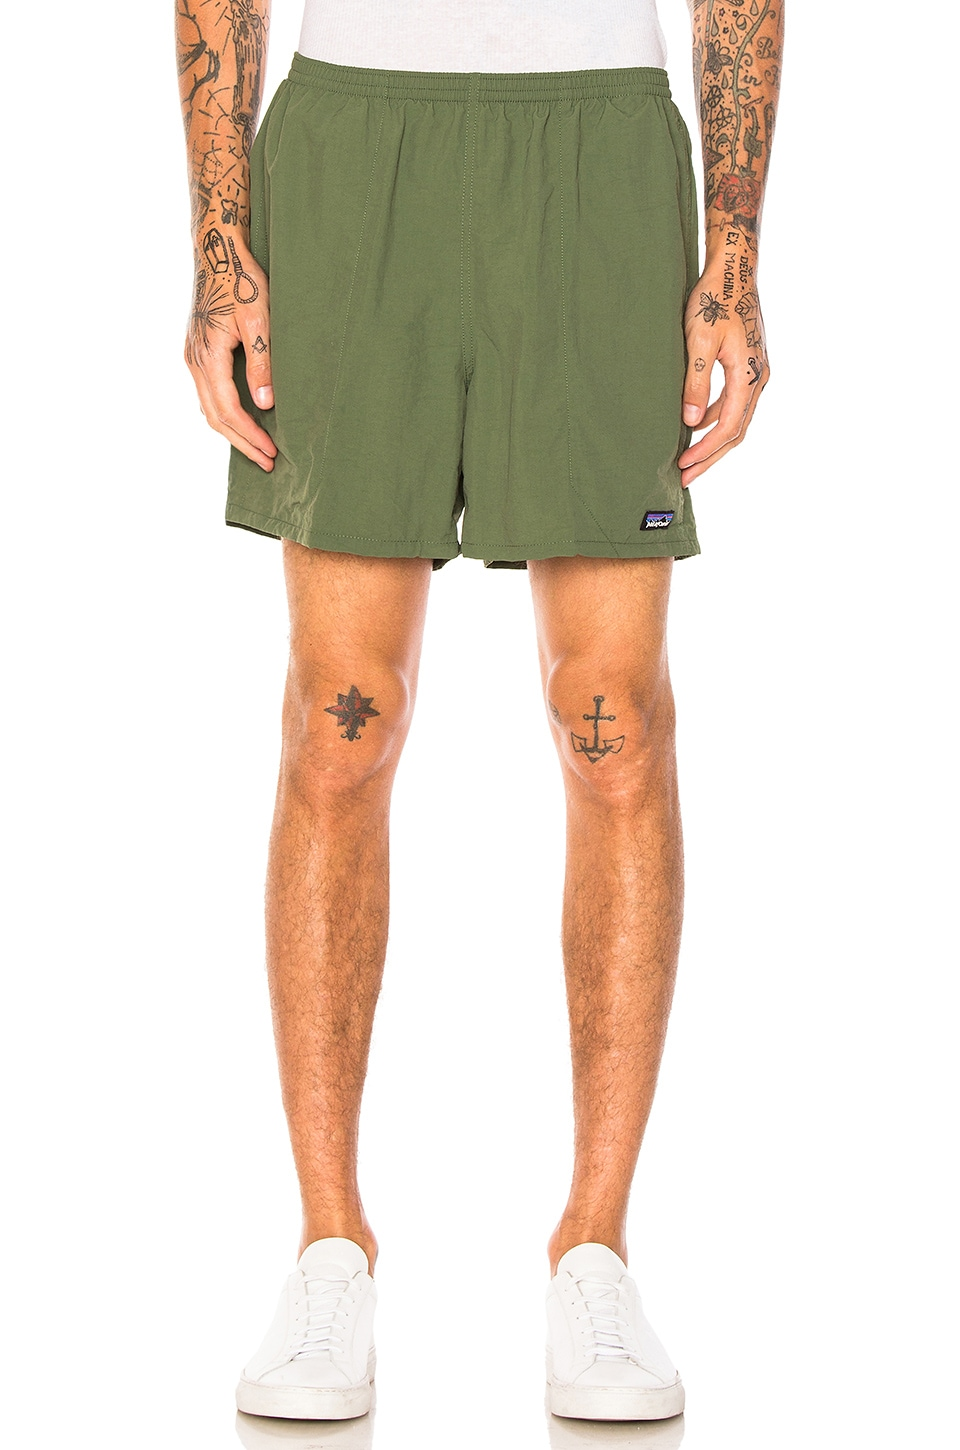 Baggies Shorts by Patagonia